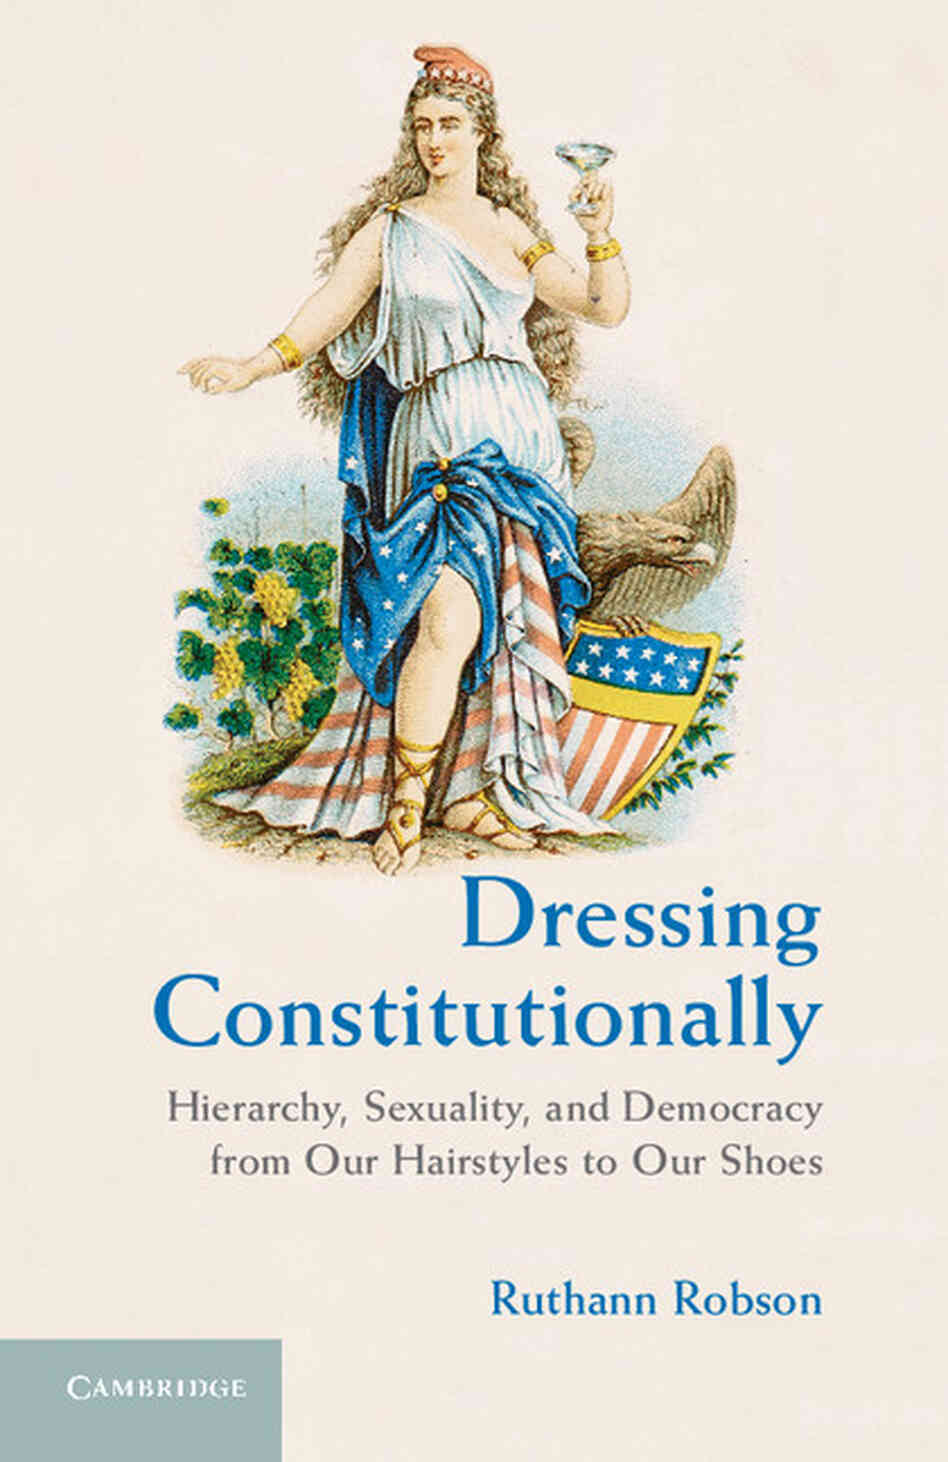 Dressing Constitutionally